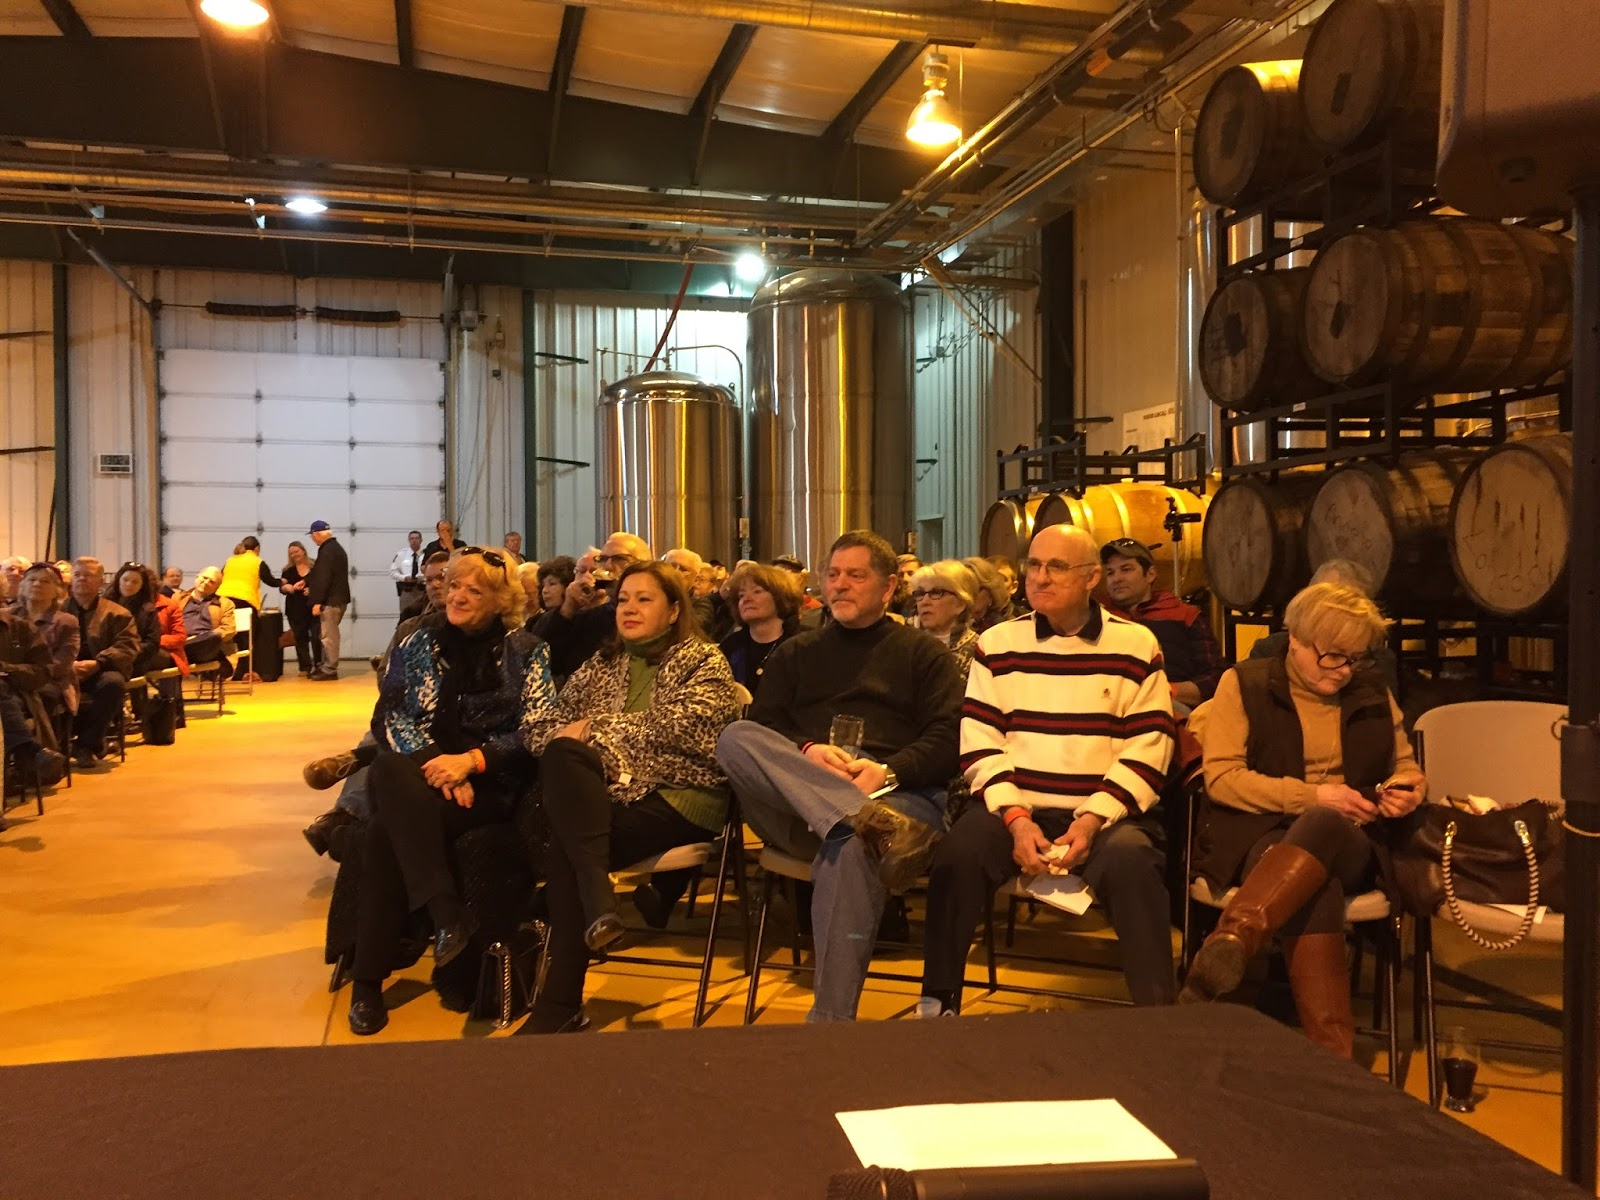 Old Bust Head Brewery, Next Door To The Museum, Hosted This Fundraising  Event For Cwm On Their Production Floor And Provided Great Cooperation With  Us For